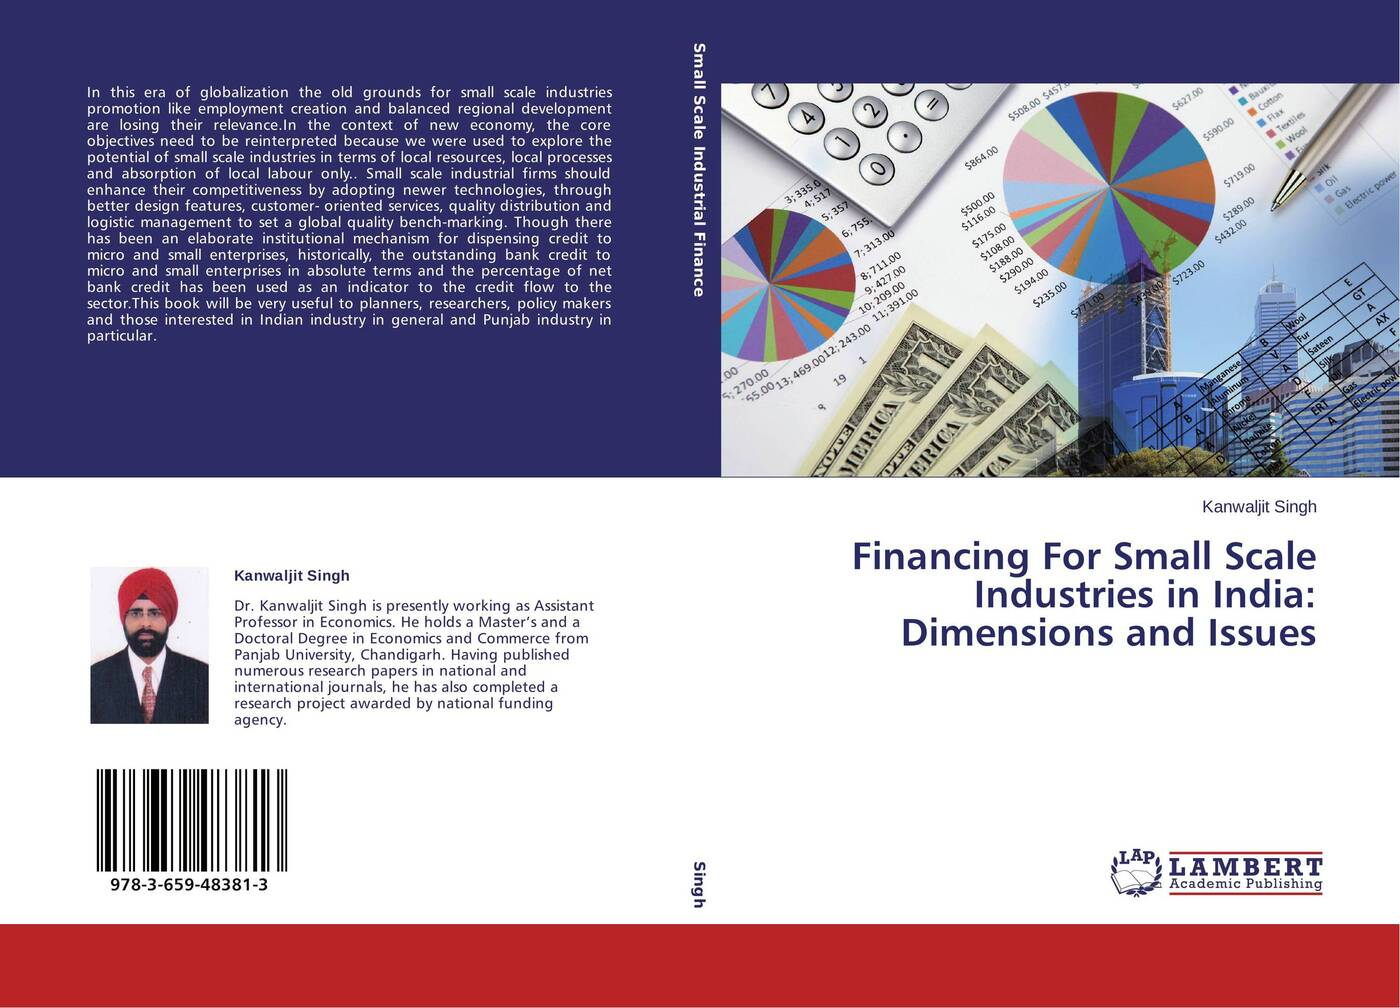 Kanwaljit Singh Financing For Small Scale Industries in India: Dimensions and Issues development of small scale food industry cluster in indonesia